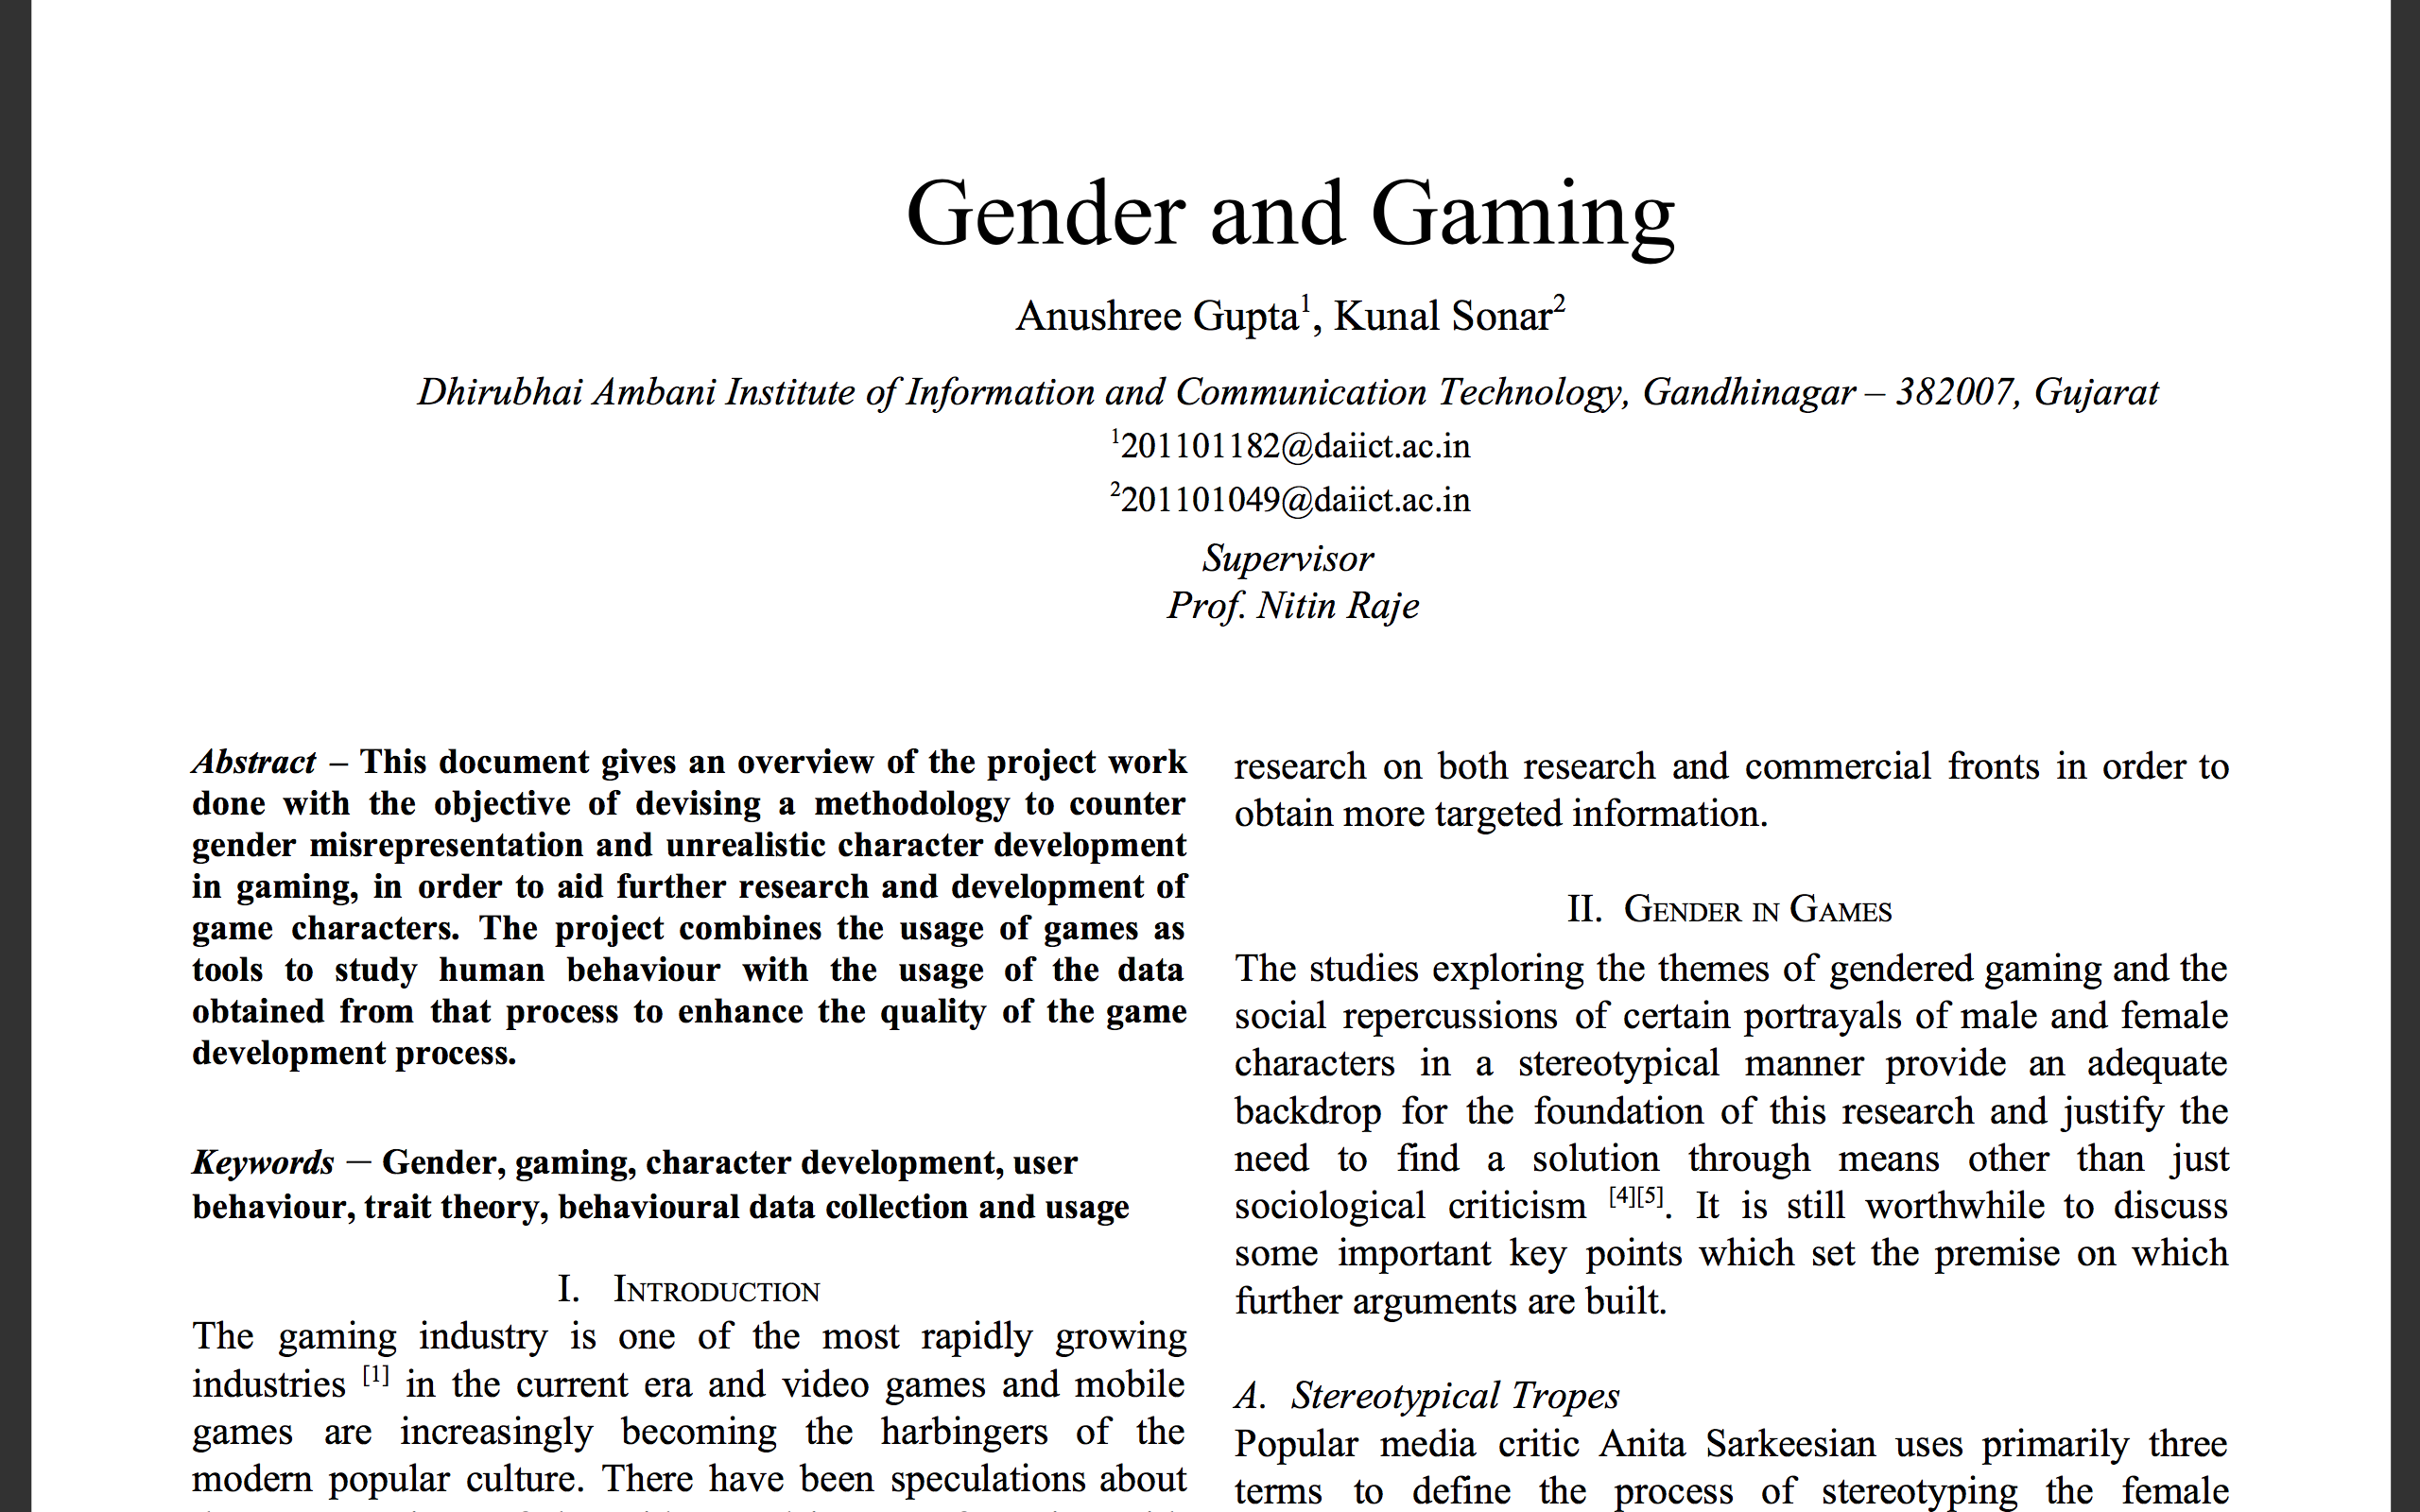 Gender and Gaming